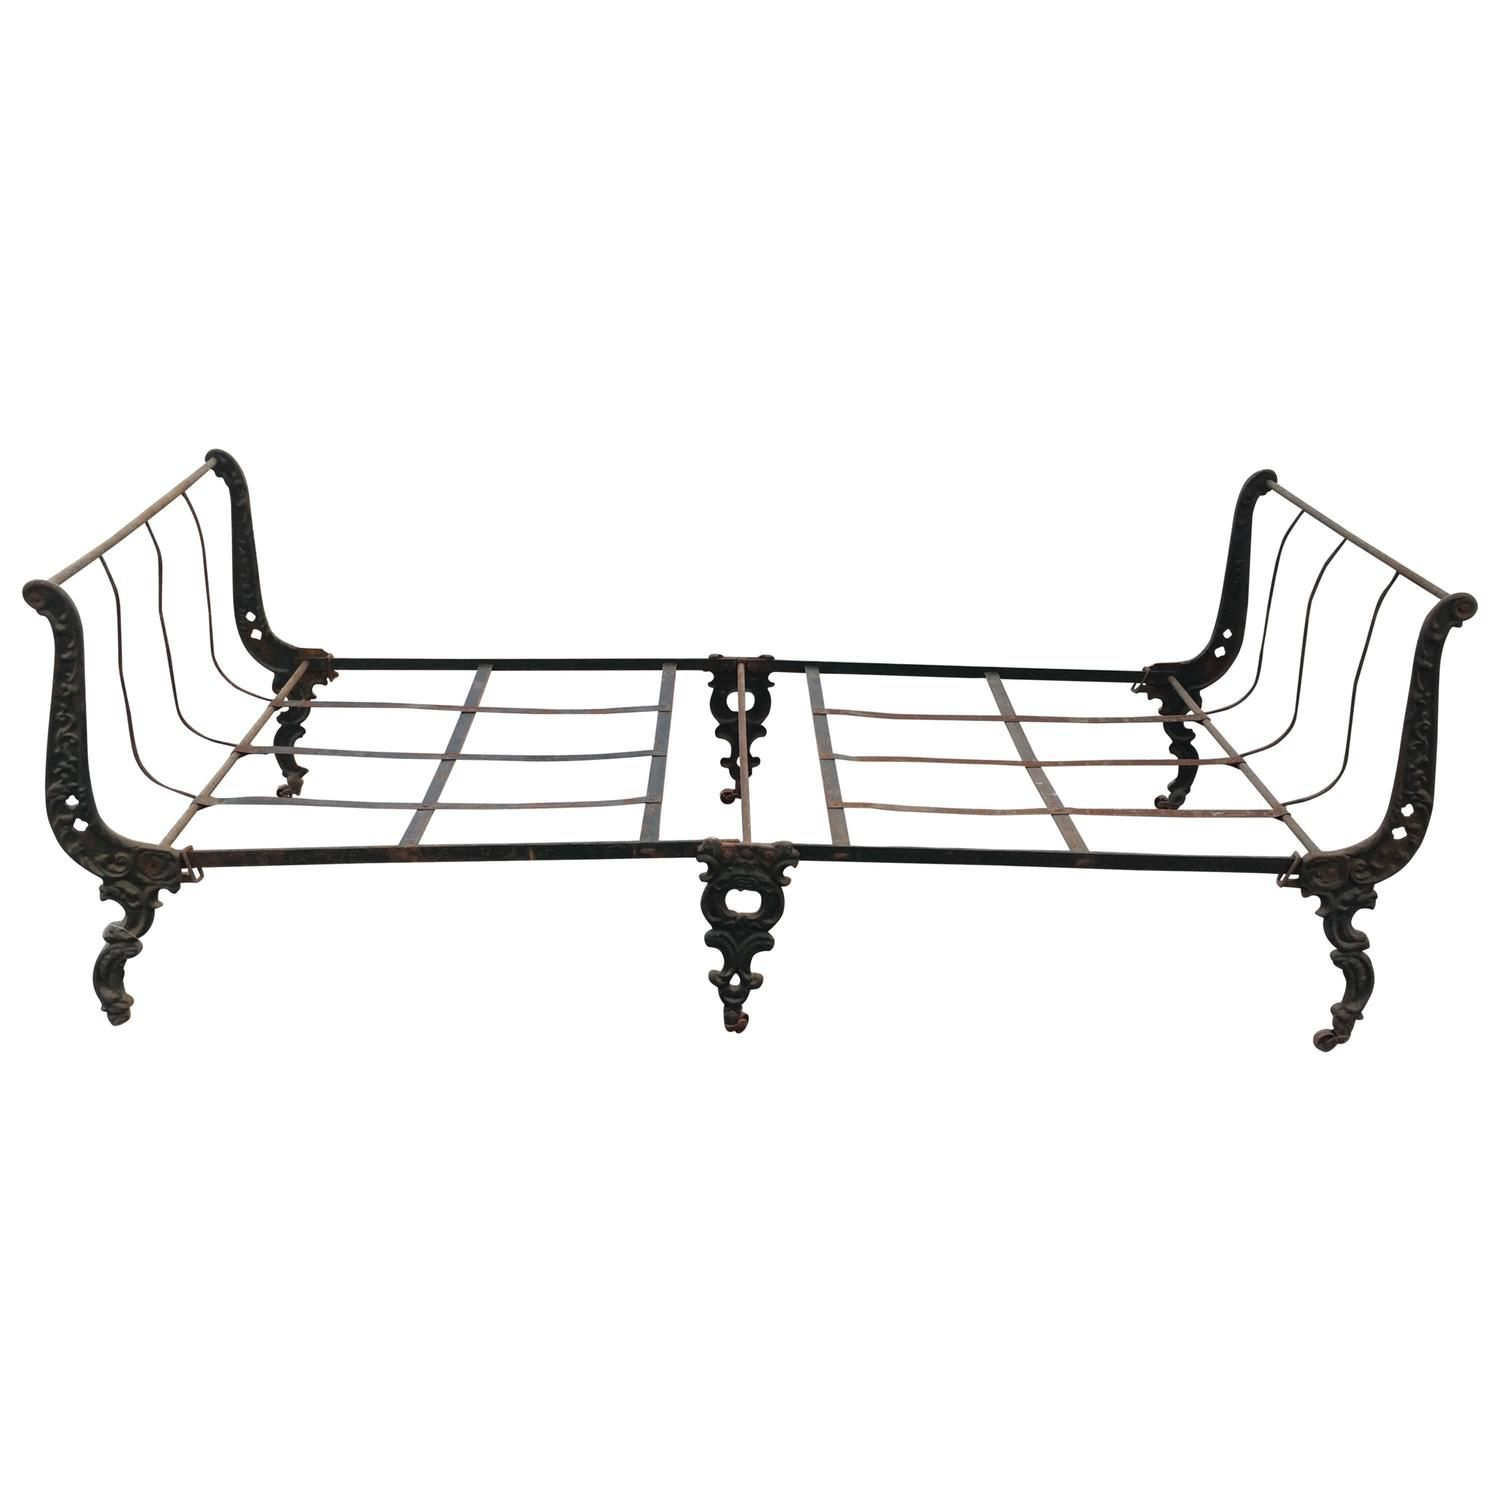 Antique french iron bed - 19th Century French Cast Iron Campaign Daybed